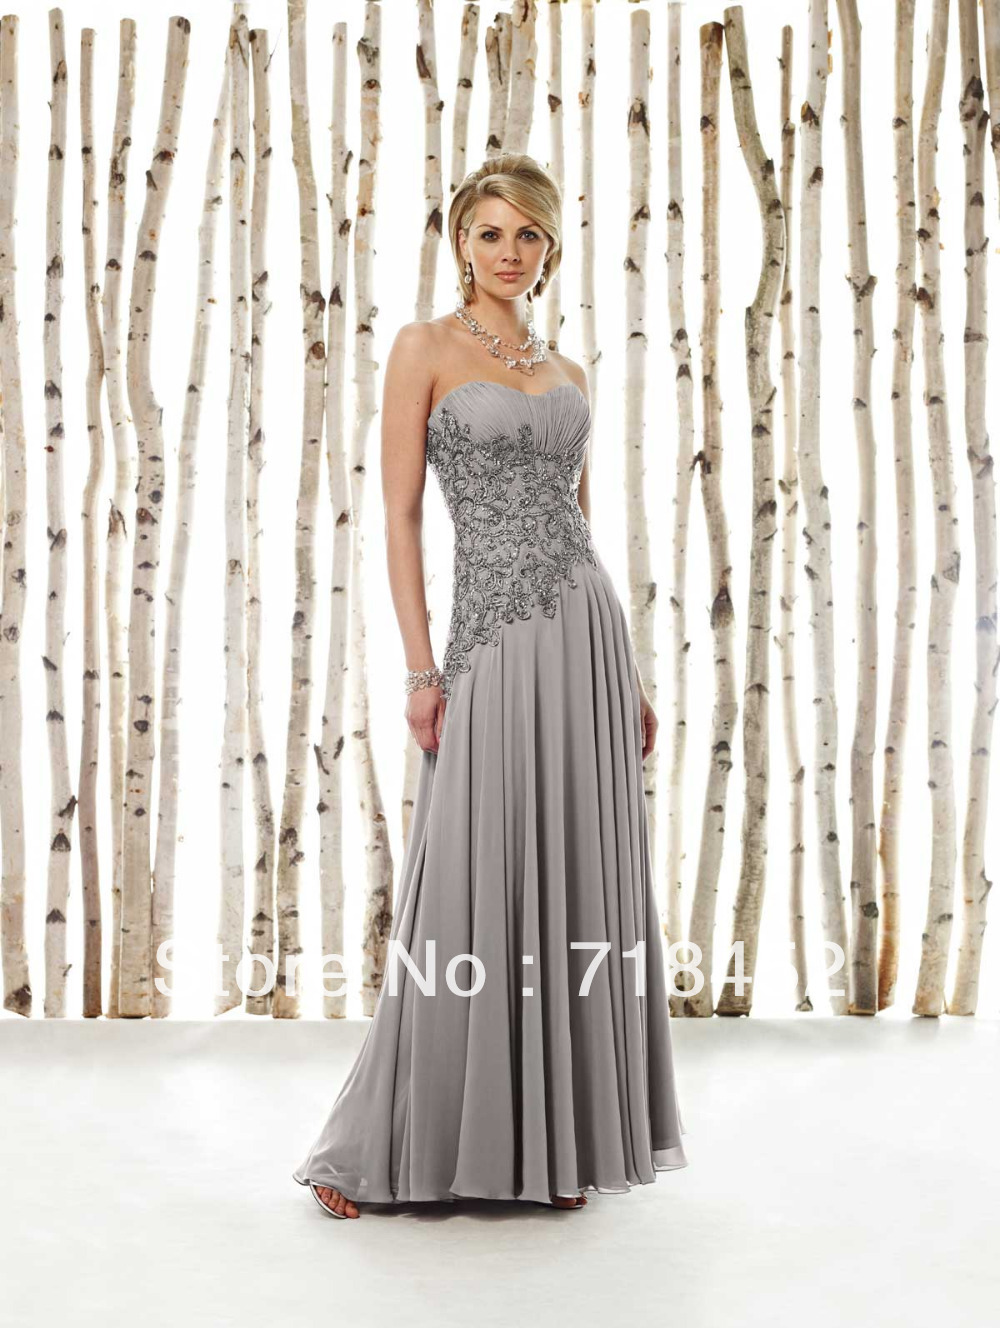 Of the bride dress sweetheart appliques beaded free shipping md620 jpg